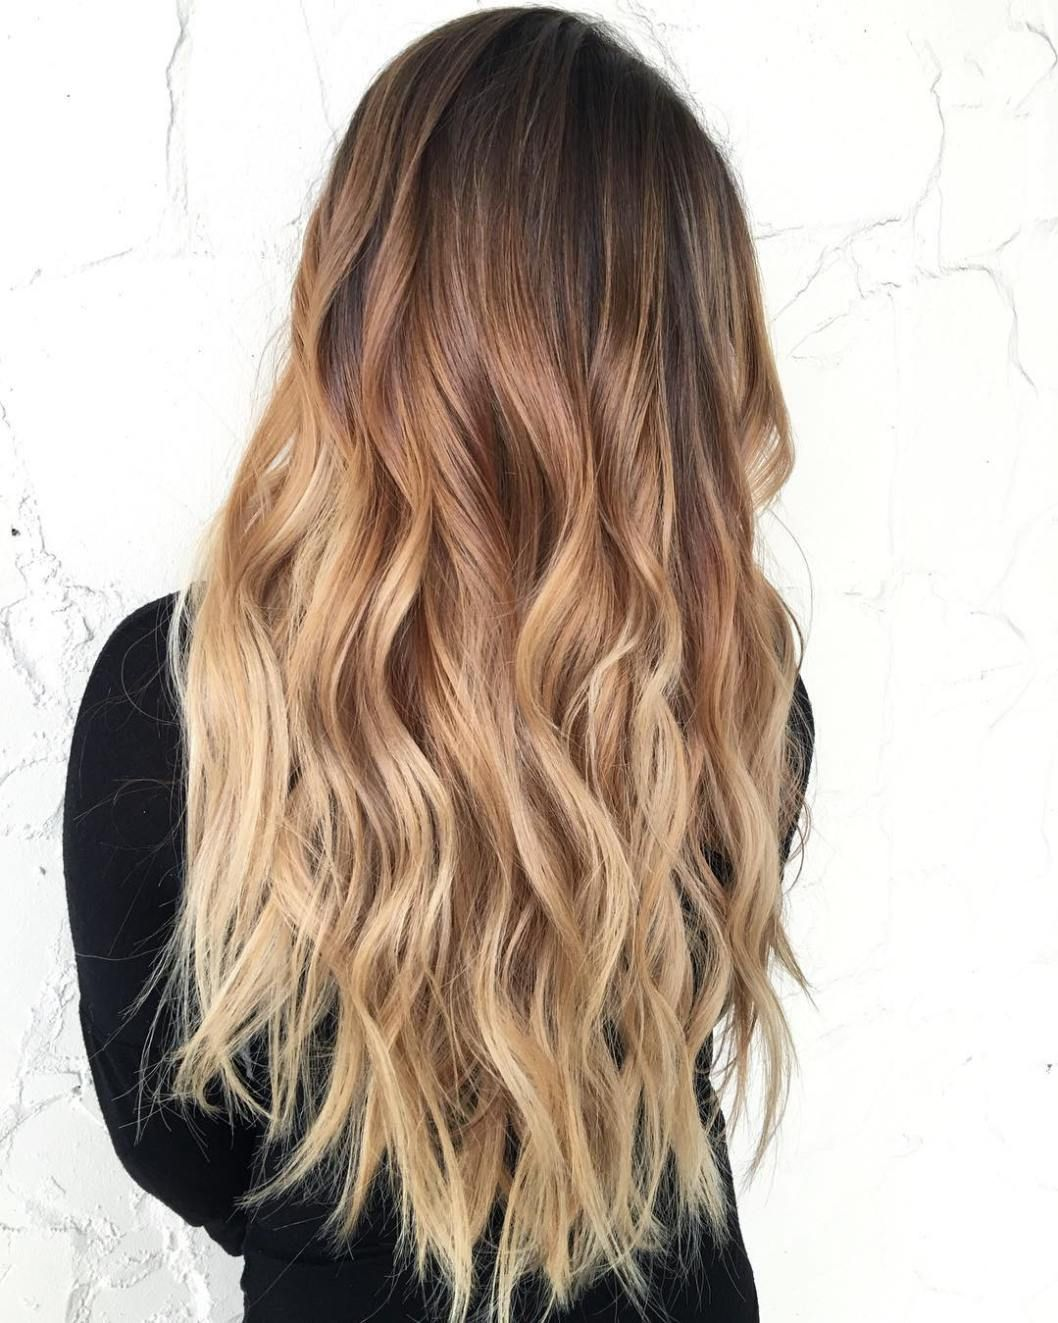 60 best ombre hair color ideas for blond brown red and black hair blonde ombre ombre and - Ombre braun blond ...